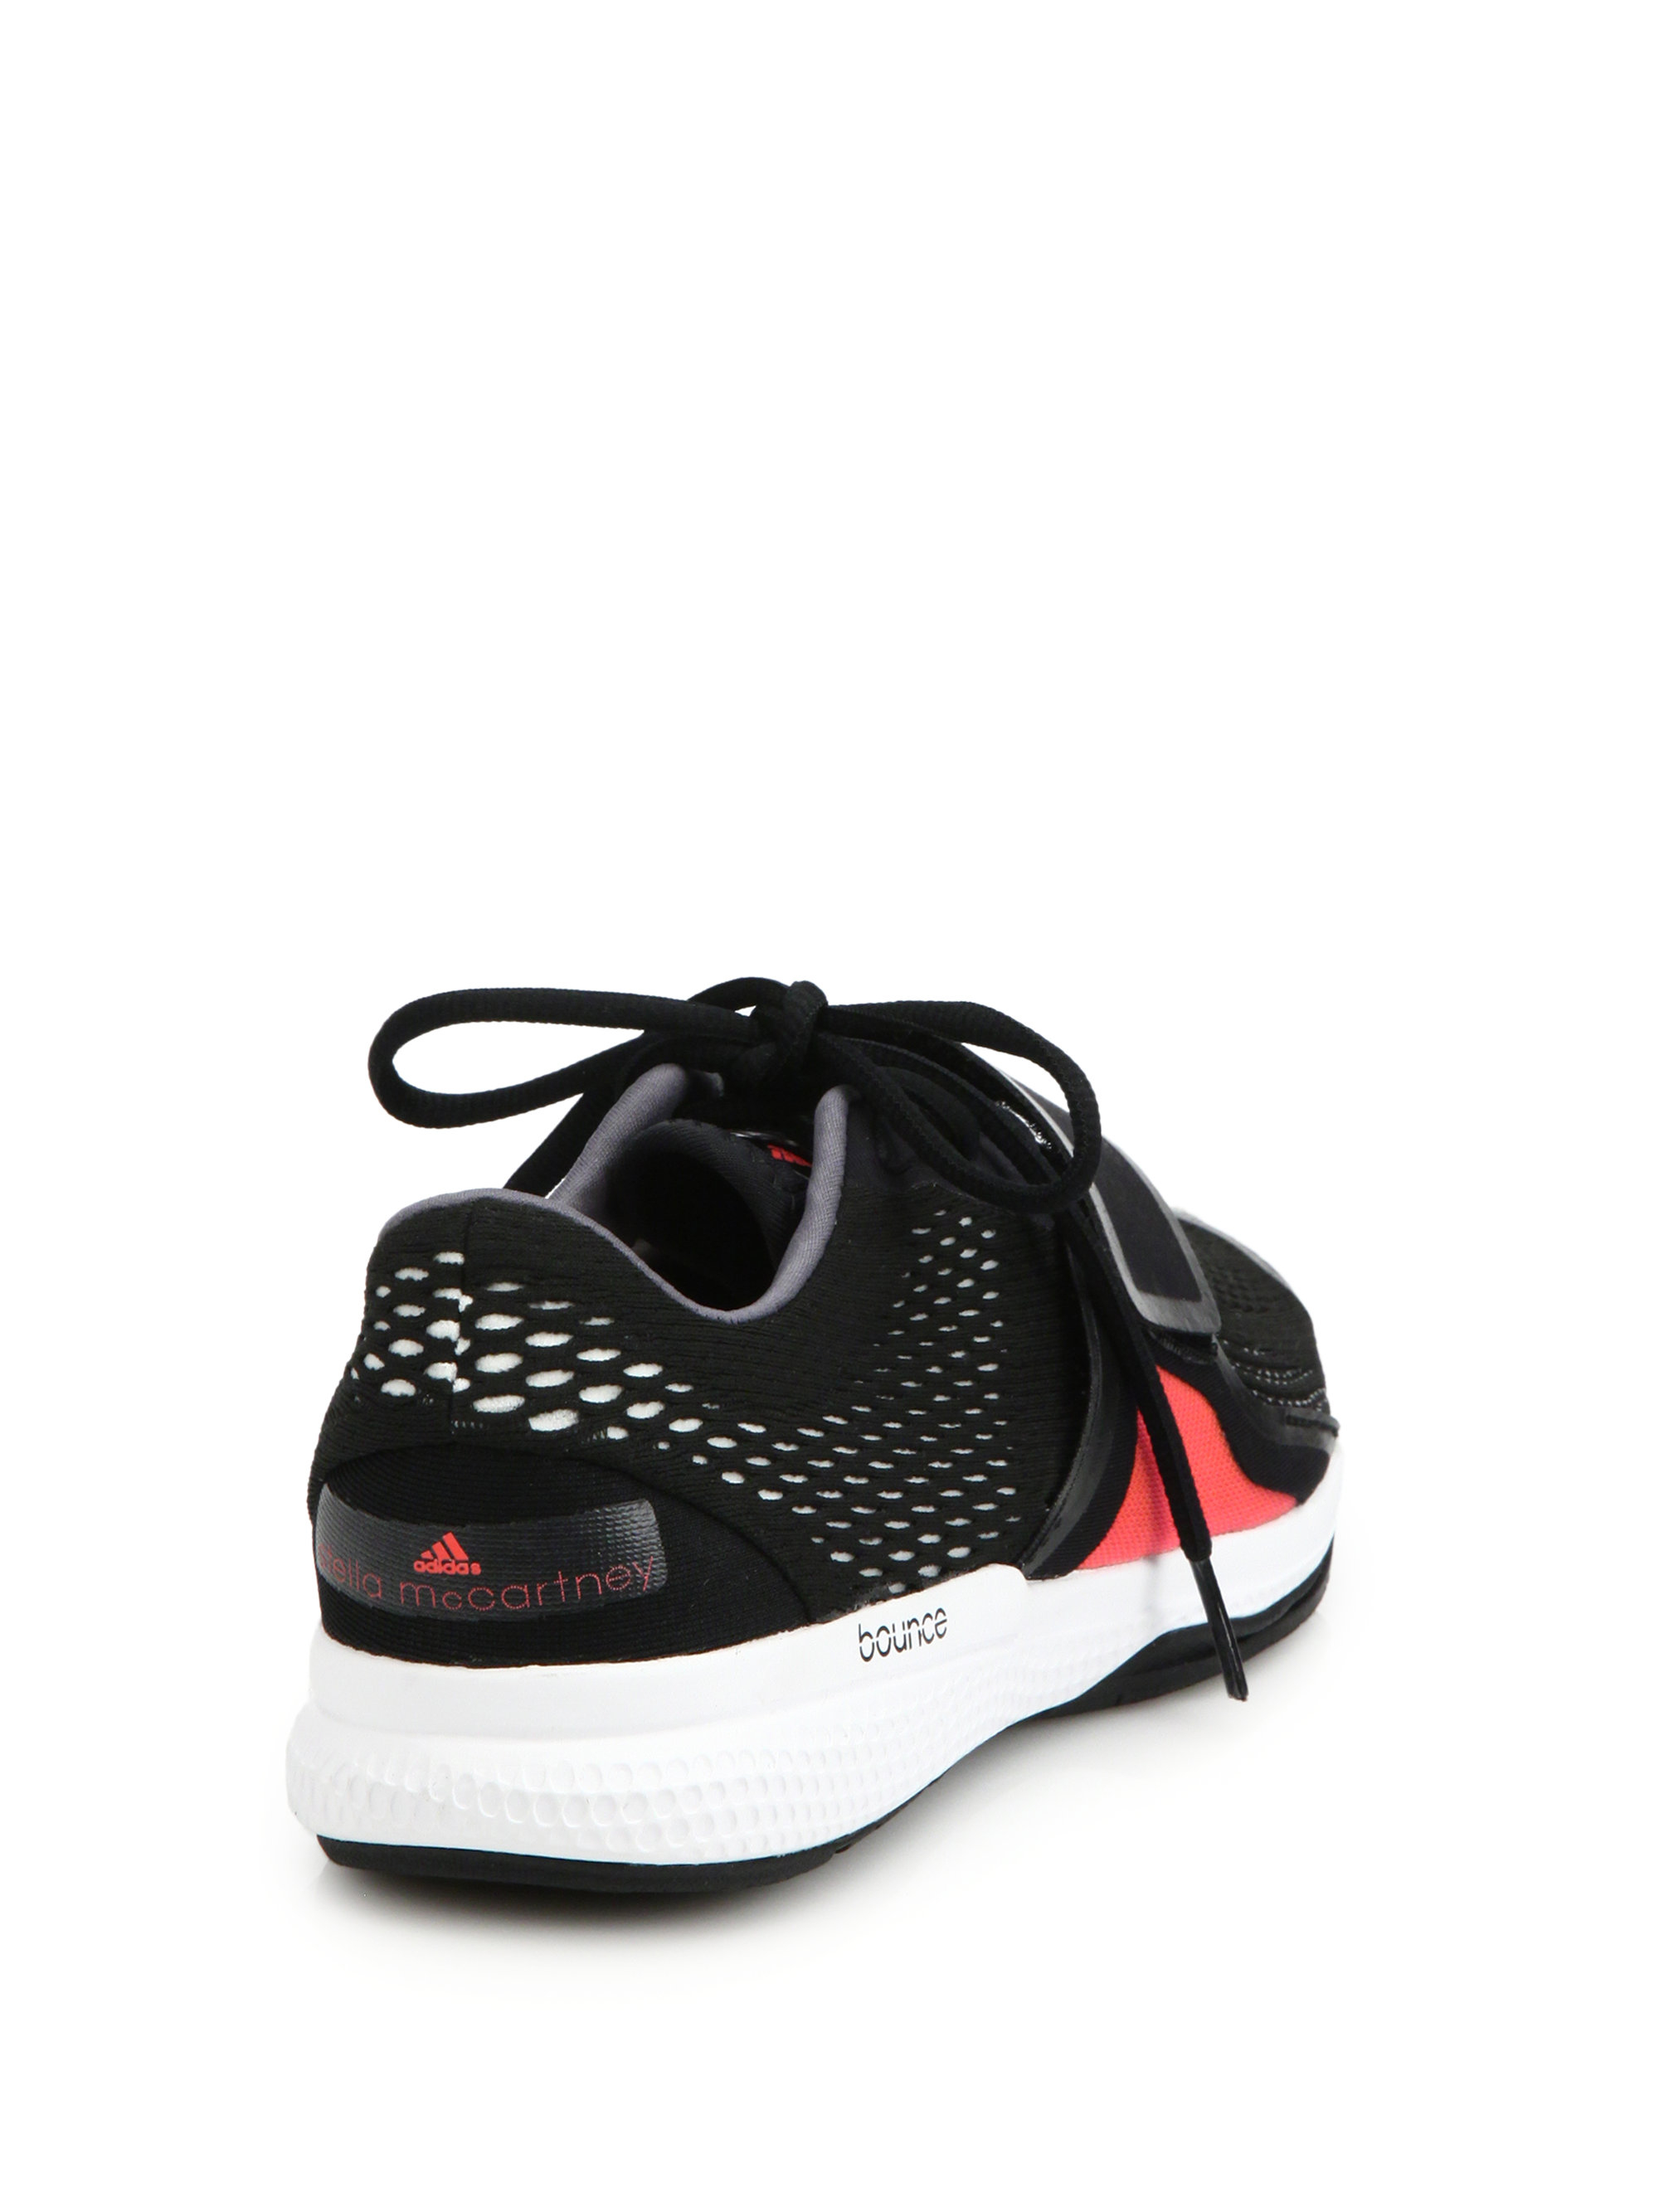 2aea4a79af4d8 Lyst - adidas By Stella McCartney Atani Bounce Sneakers in Black